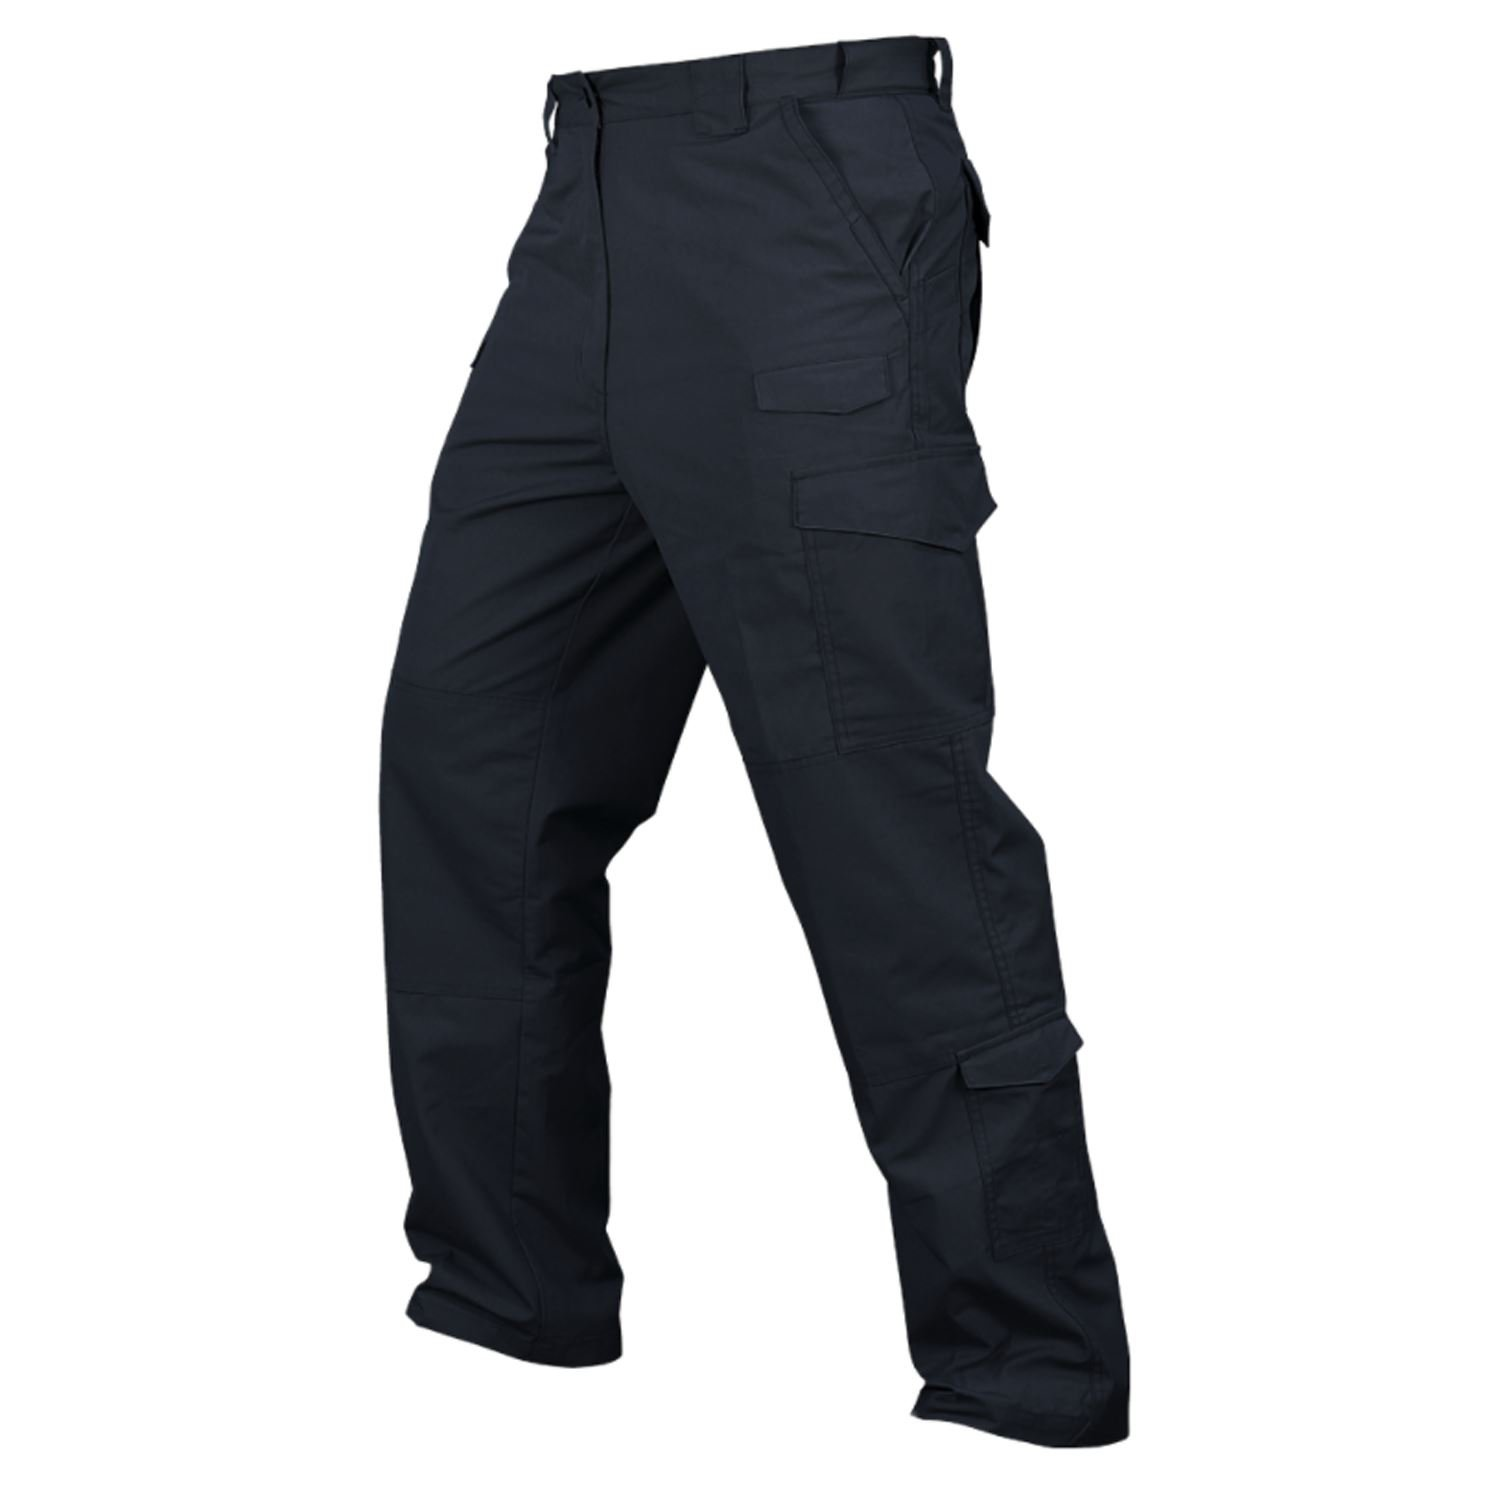 CONDOR 608 Sentinel Tactical Pants - Lightweight Ripstop Navy 34X32